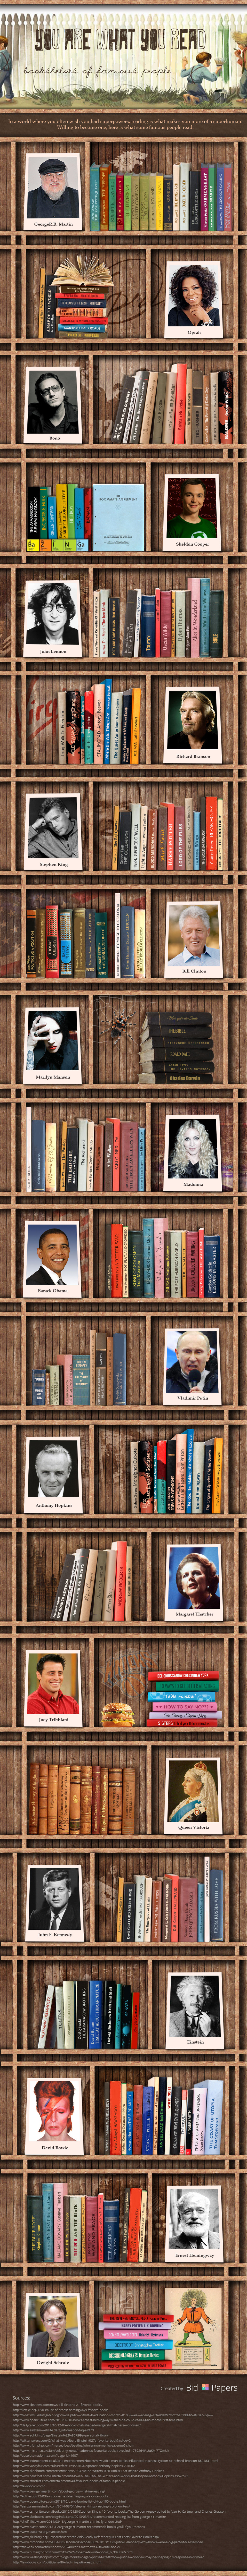 You are what you read - bookshelves of famous people